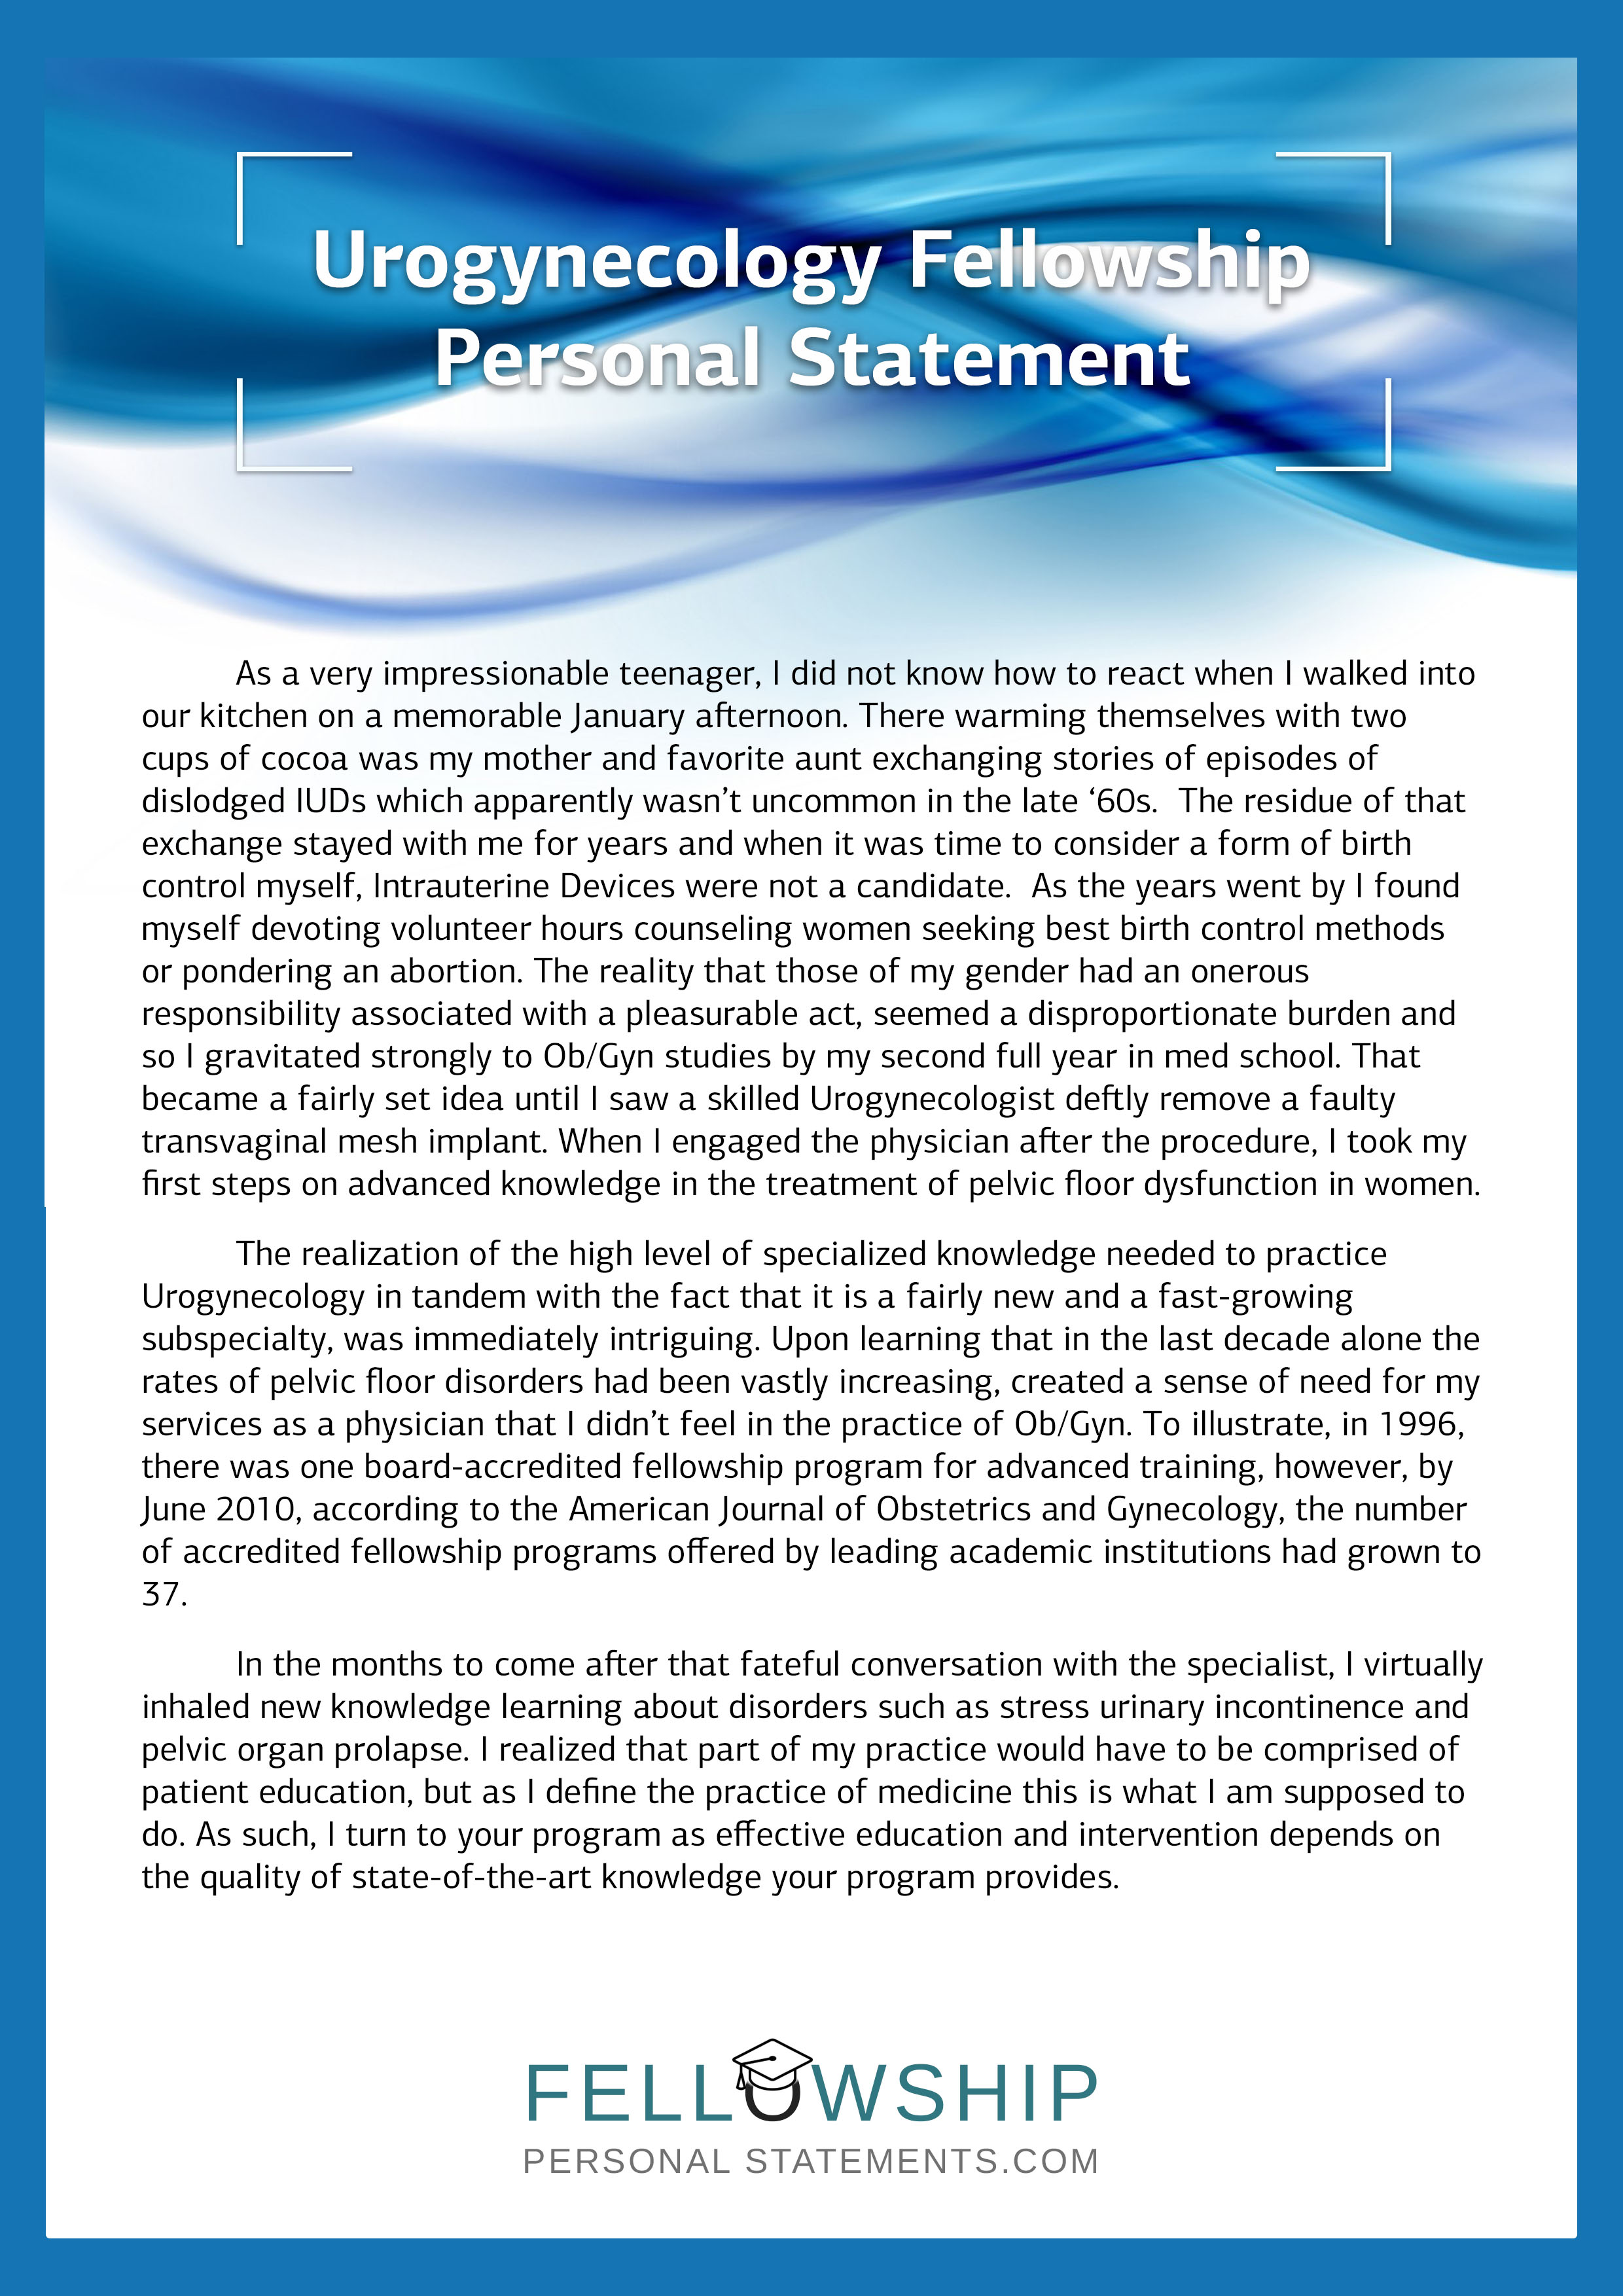 vascular surgery personal statement Writing a personal statement for fellowship applications your personal statement will usually be one page or less, single spaced some fellowships have a word limit, or a character limit, or a space limit.